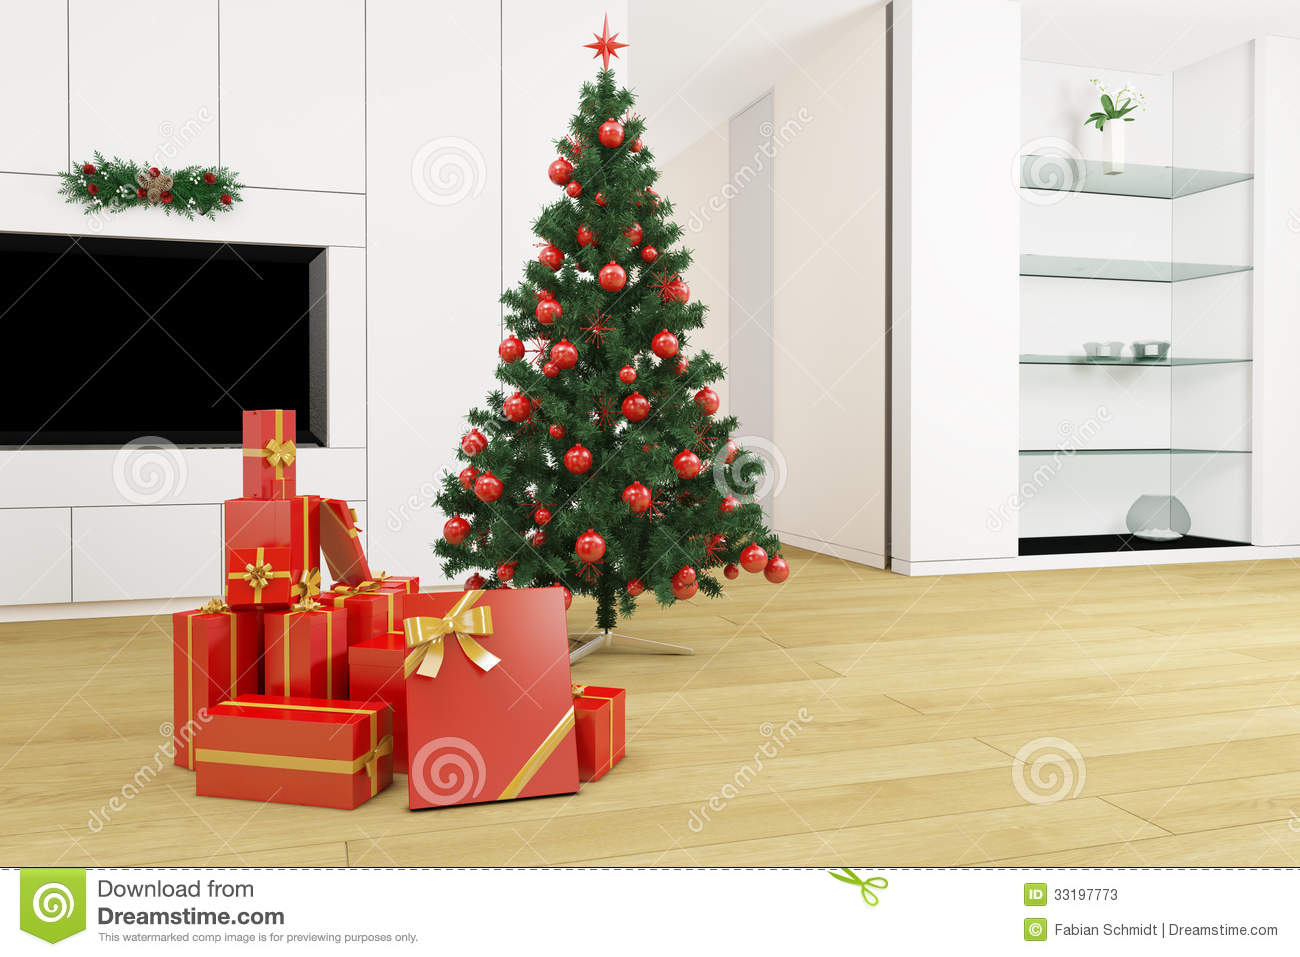 Christmas Tree In Living Room living room with christmas tree stock photos - image: 33197773